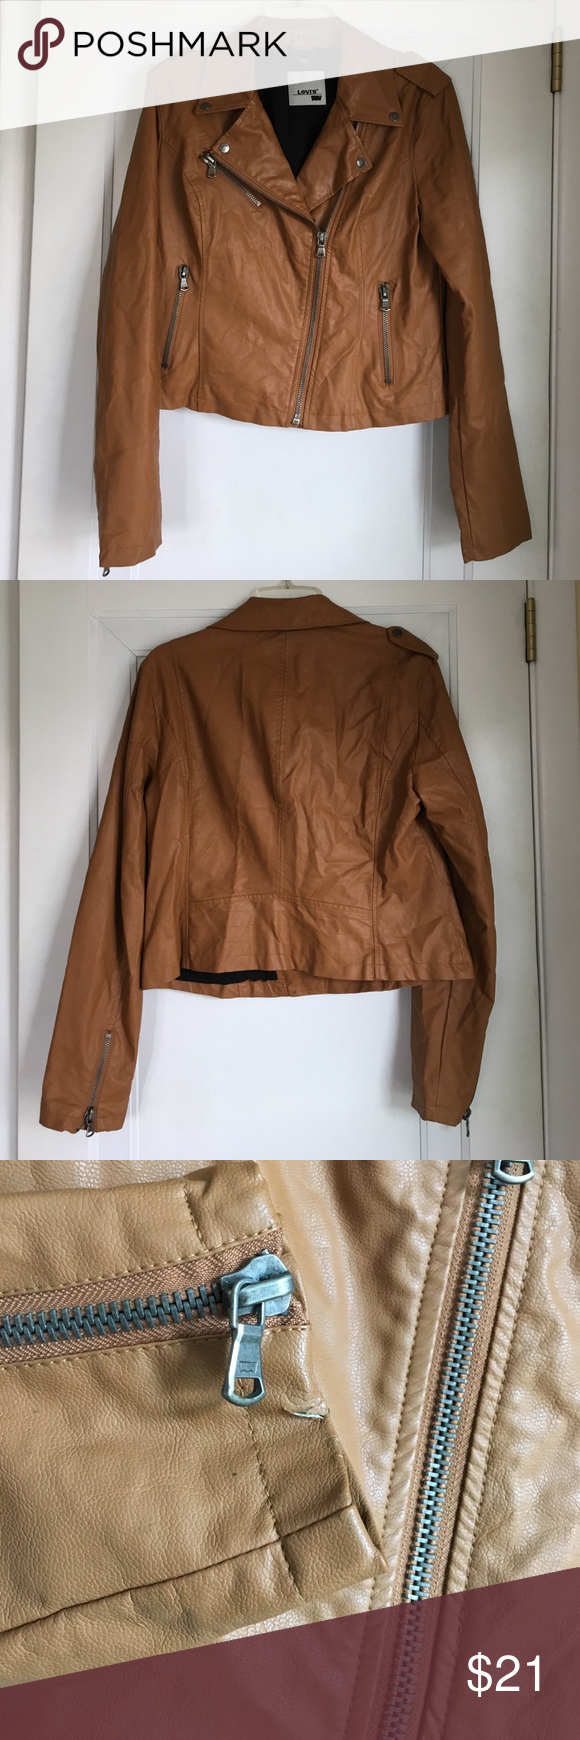 Levi's faux leather motorcycle jacket Light brown faux